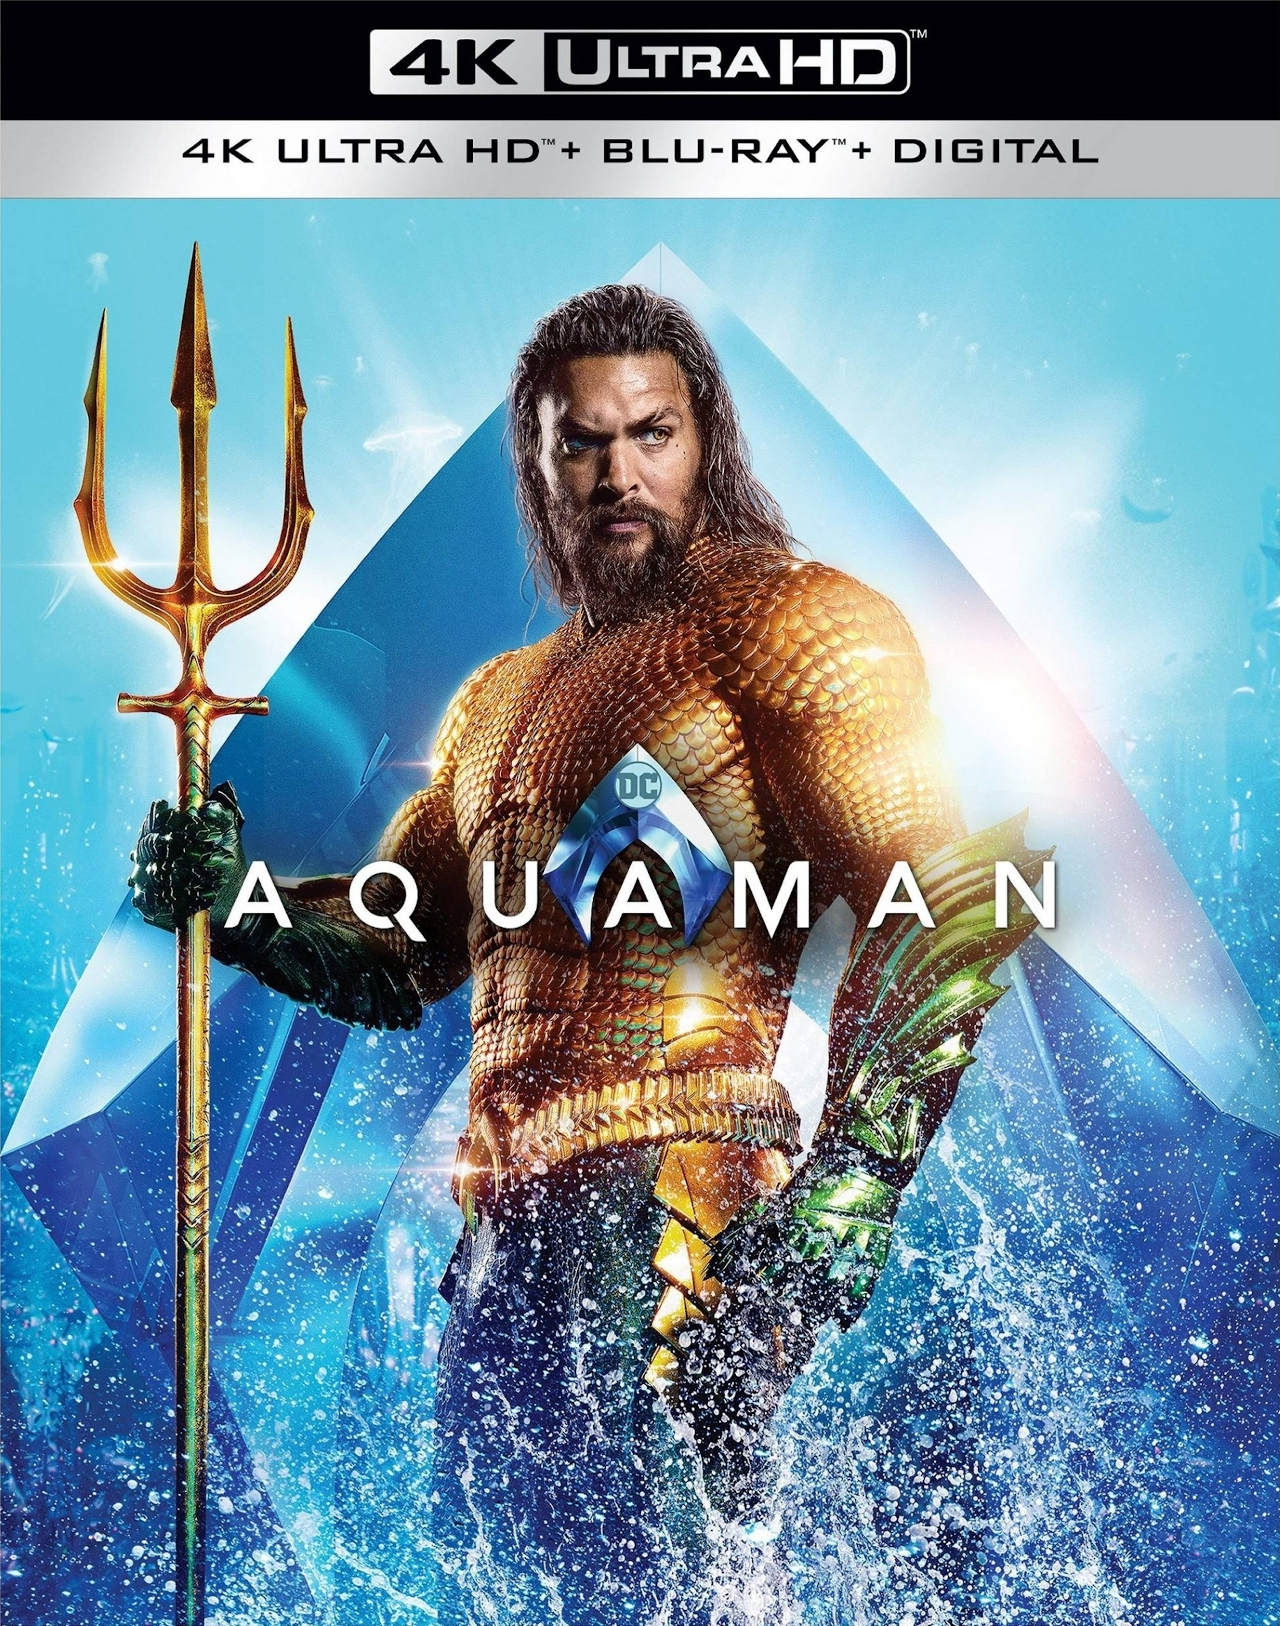 Aquaman 4K UHD - Best 4K Blu-ray DC Superhero Movies